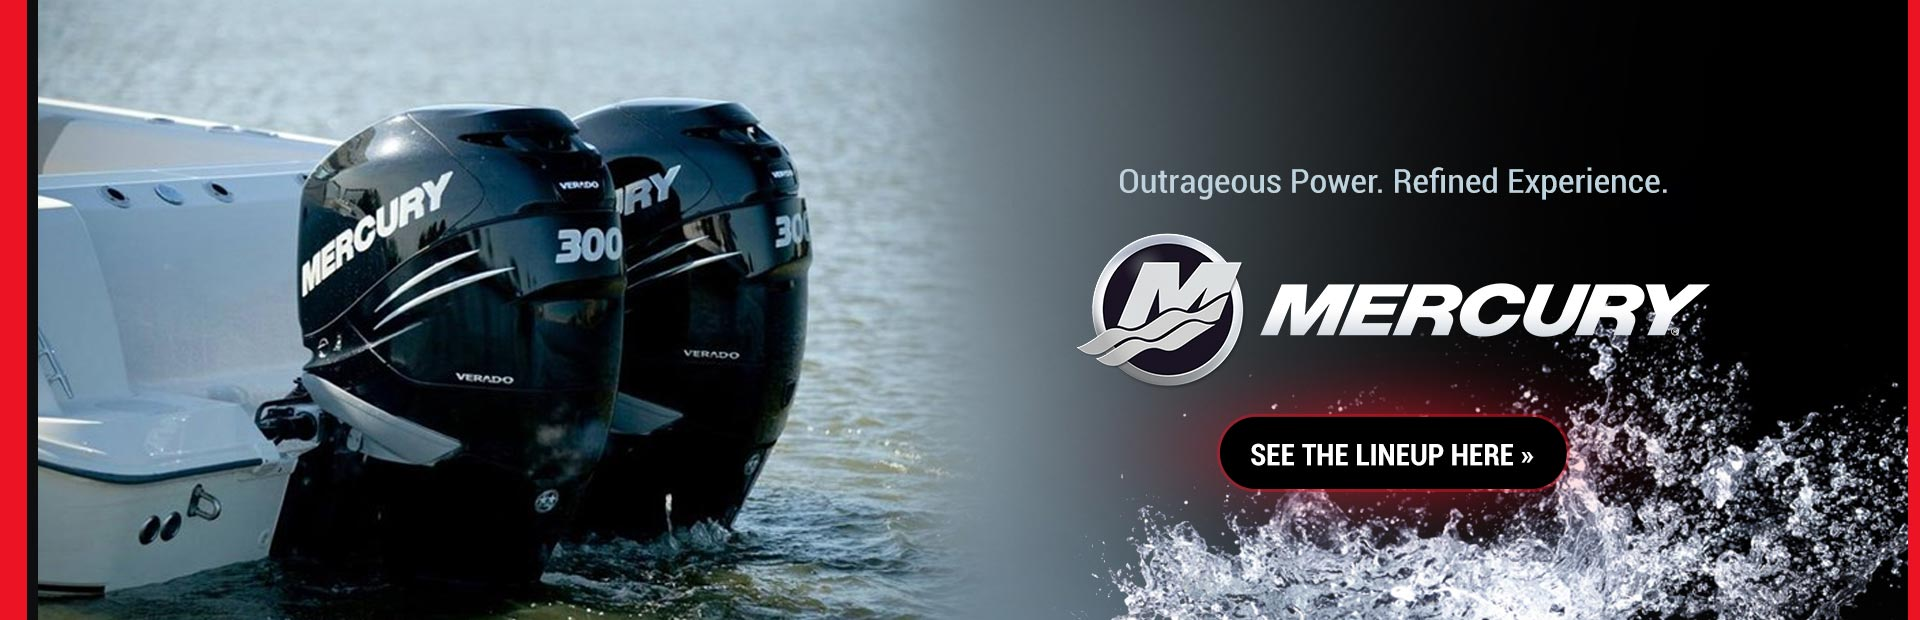 Mercury Outboard Motors: Click here to view the models.